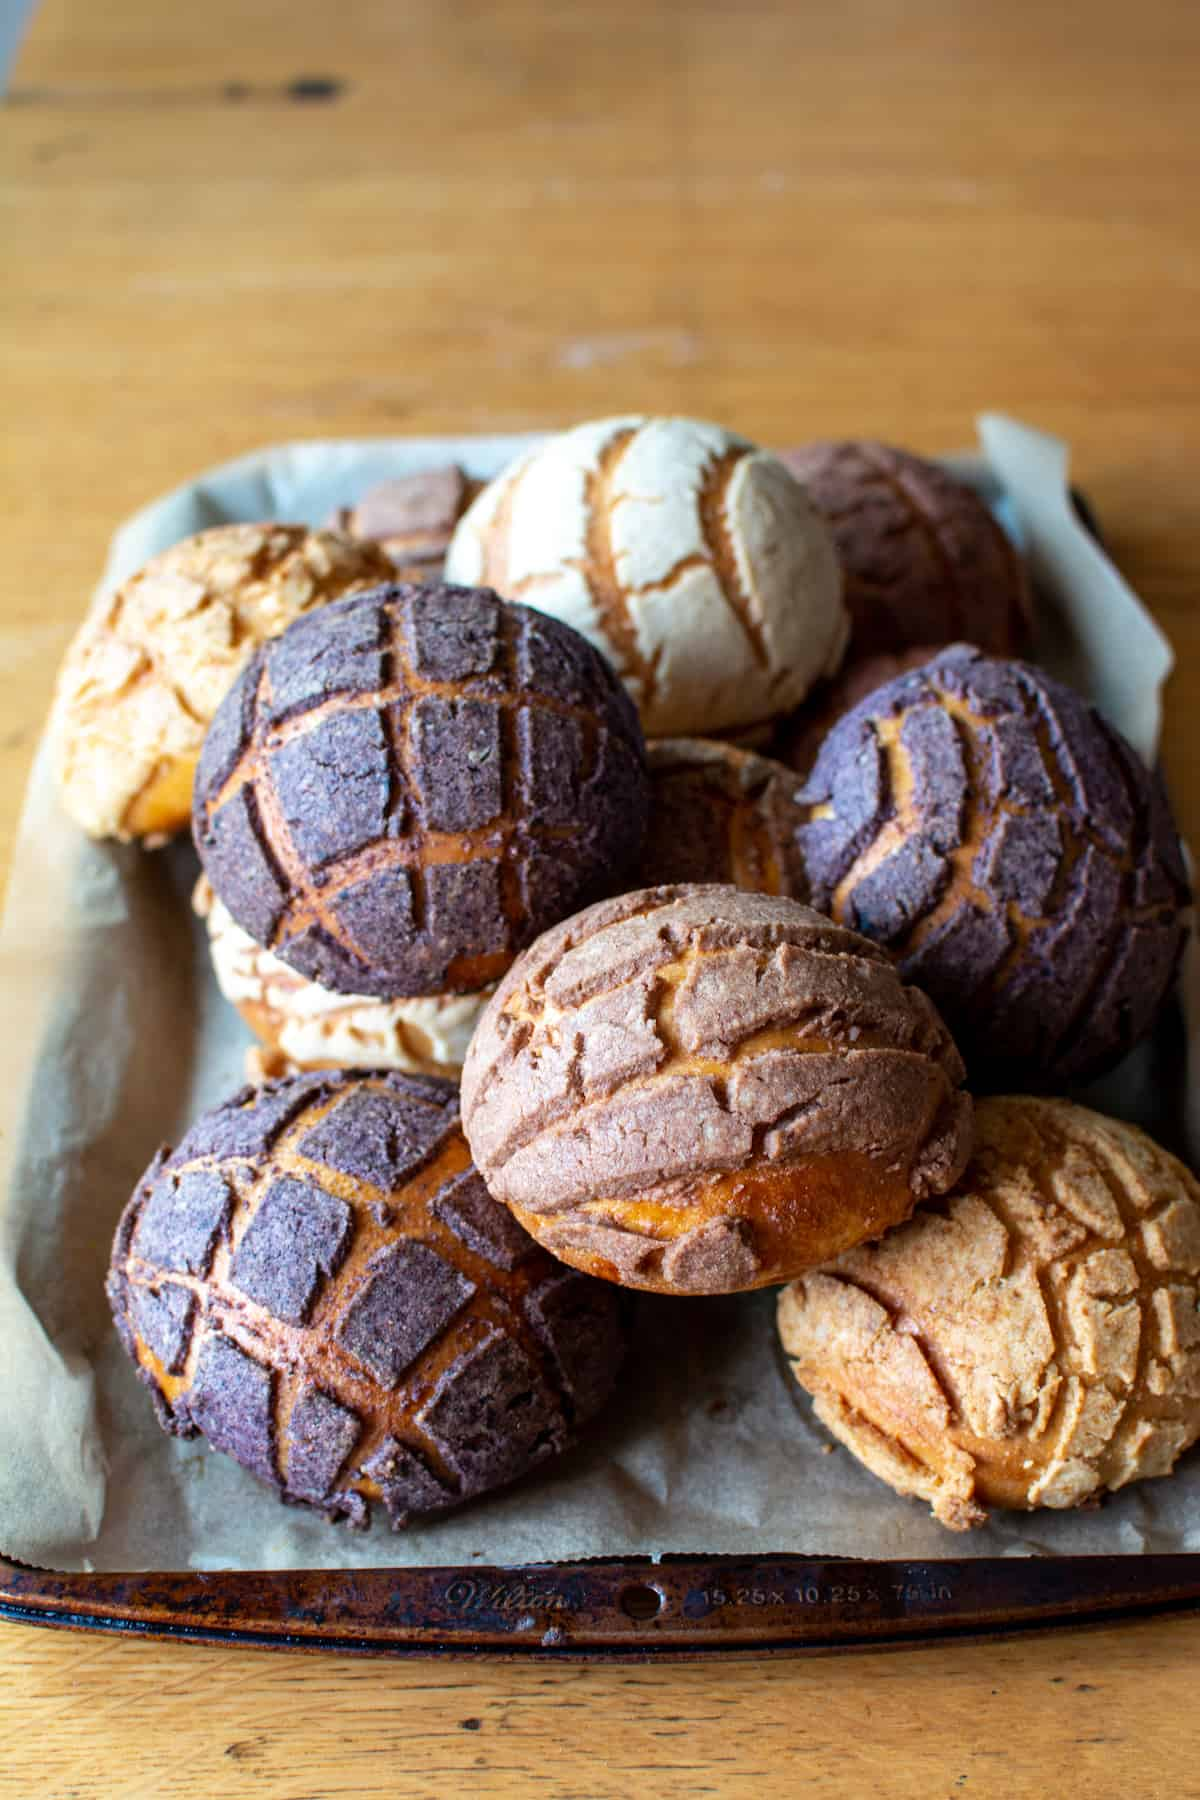 This dairy-free Concha recipe will take you step-by-step through how to make this soft and pillowy Mexican sweet bread at home. They taste exactly like the lightly sweetened bread roll with the crunchy topping you find at your local Mexican bakery—but dairy-free! #holajalapeno #concha #vegan